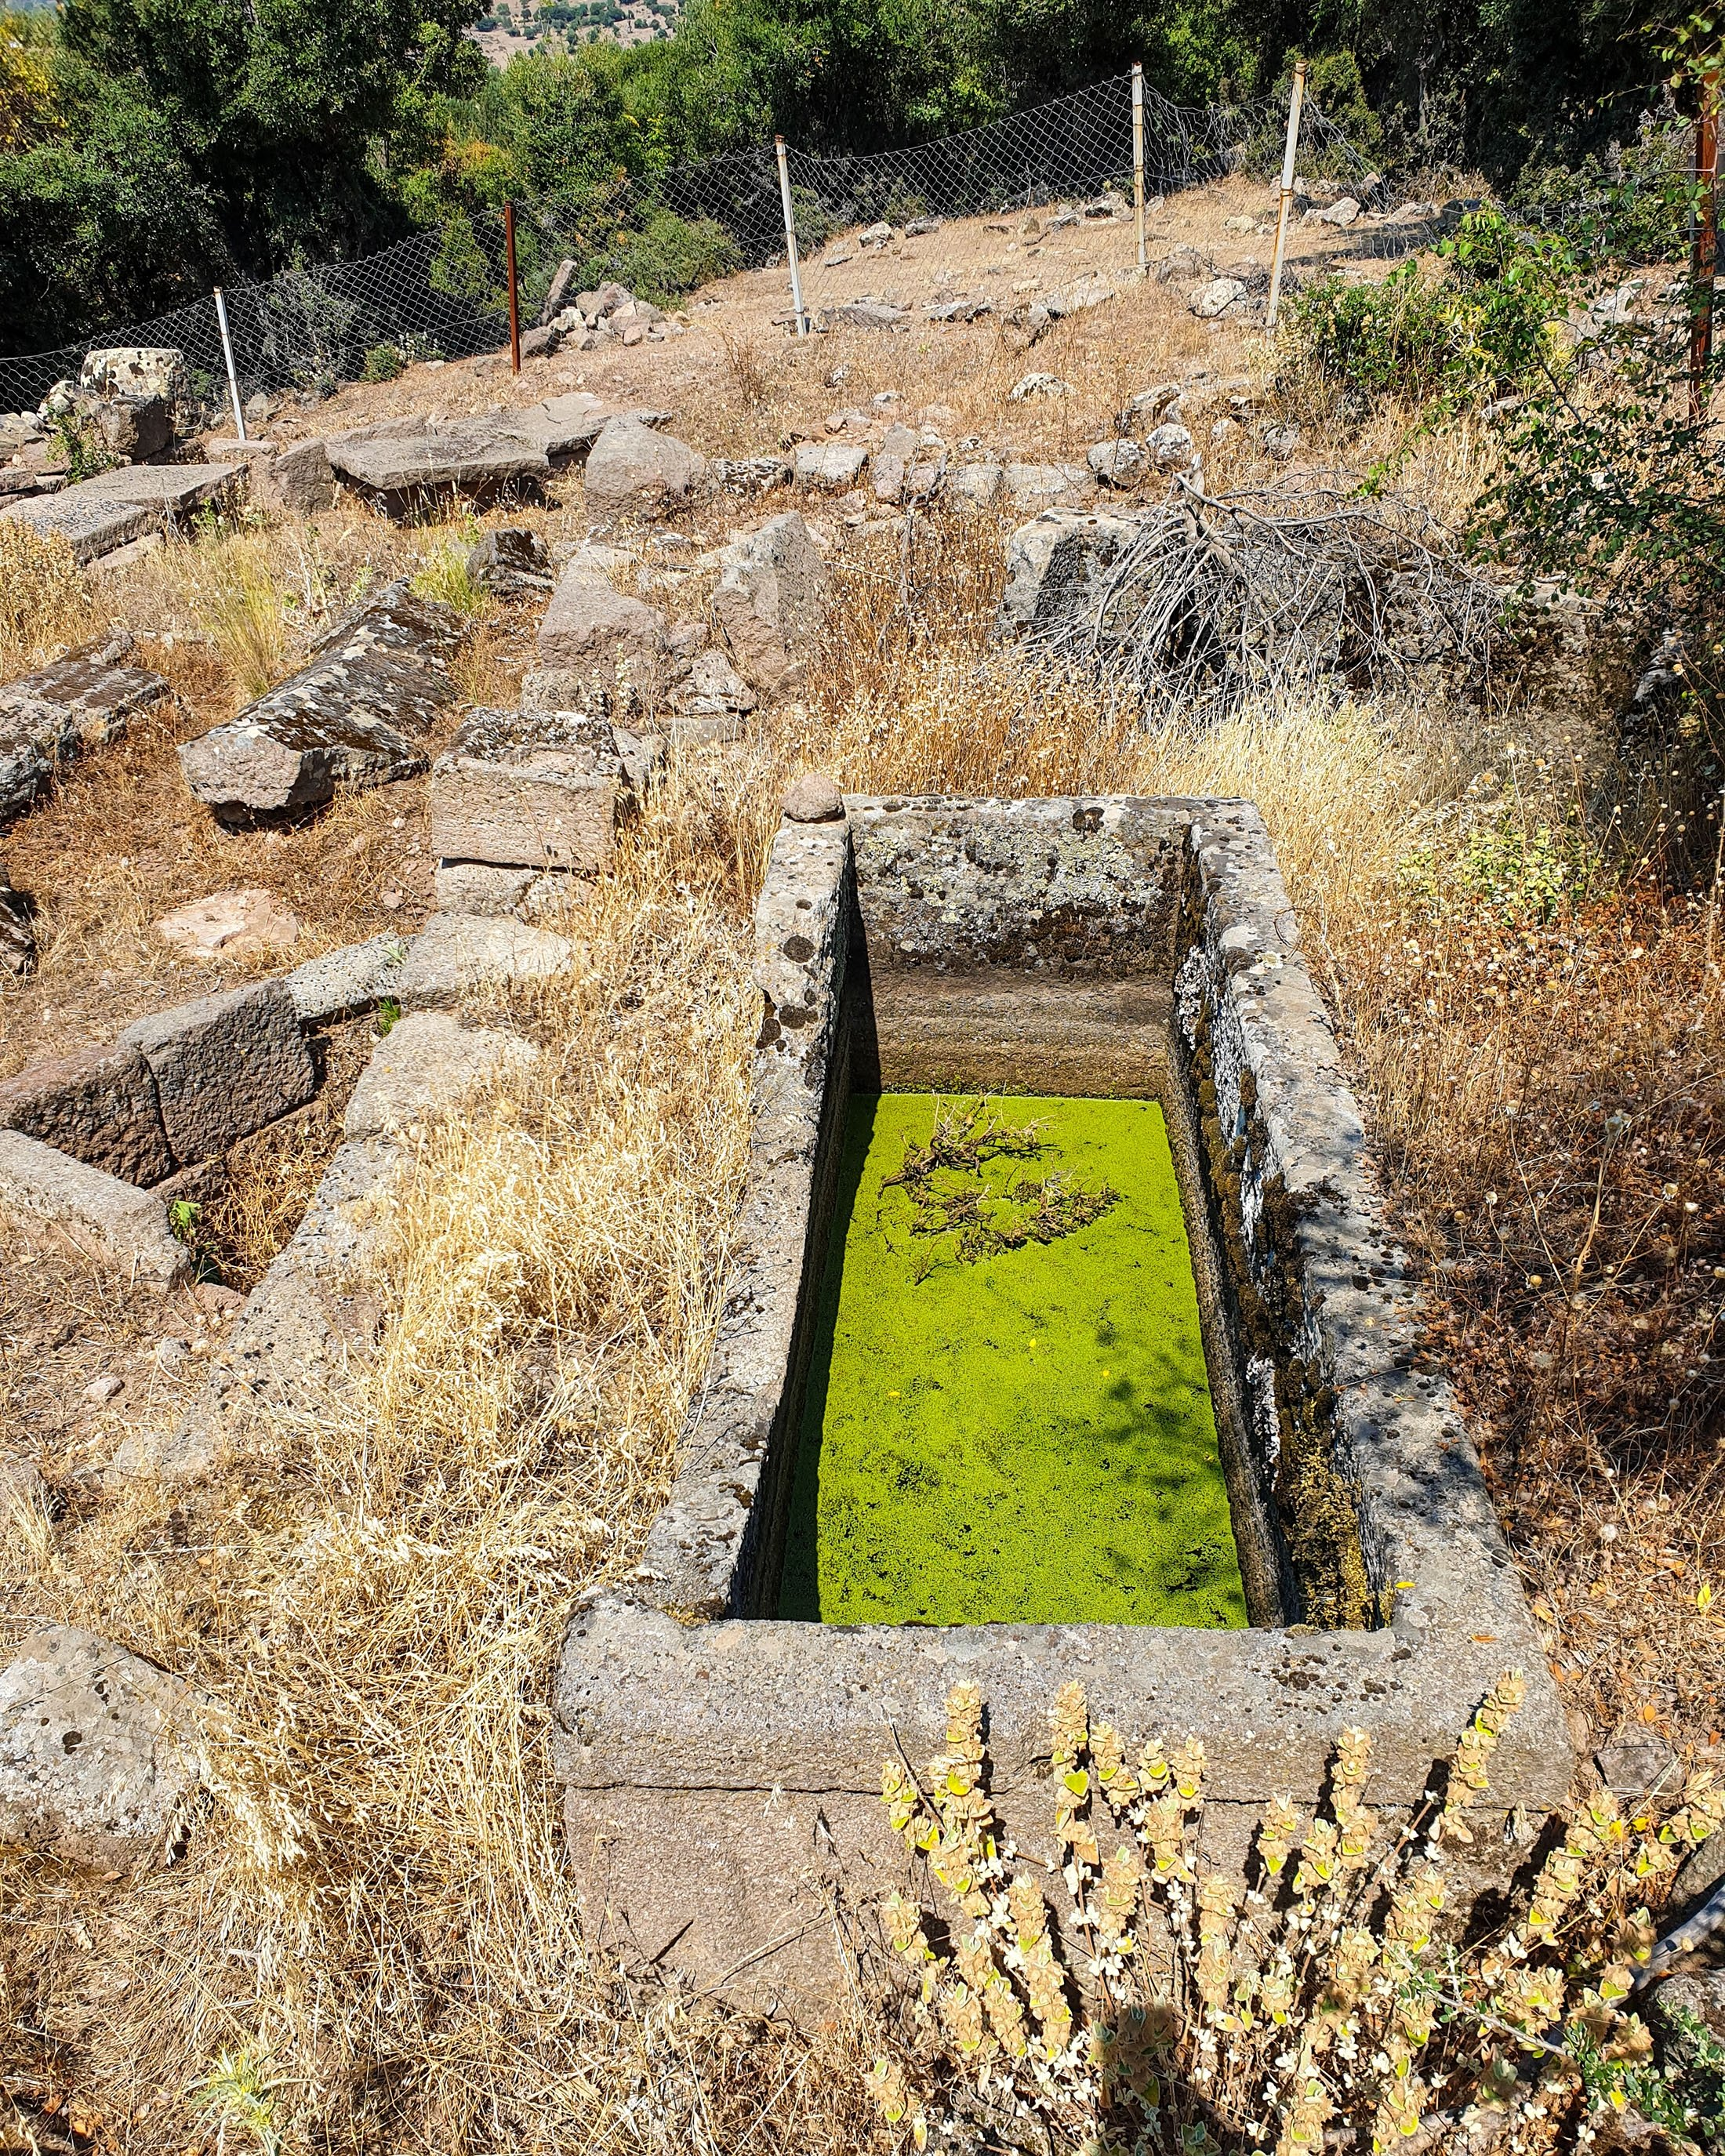 A sarcophagus filled with water at Aigai. (Photo by Argun Konuk)